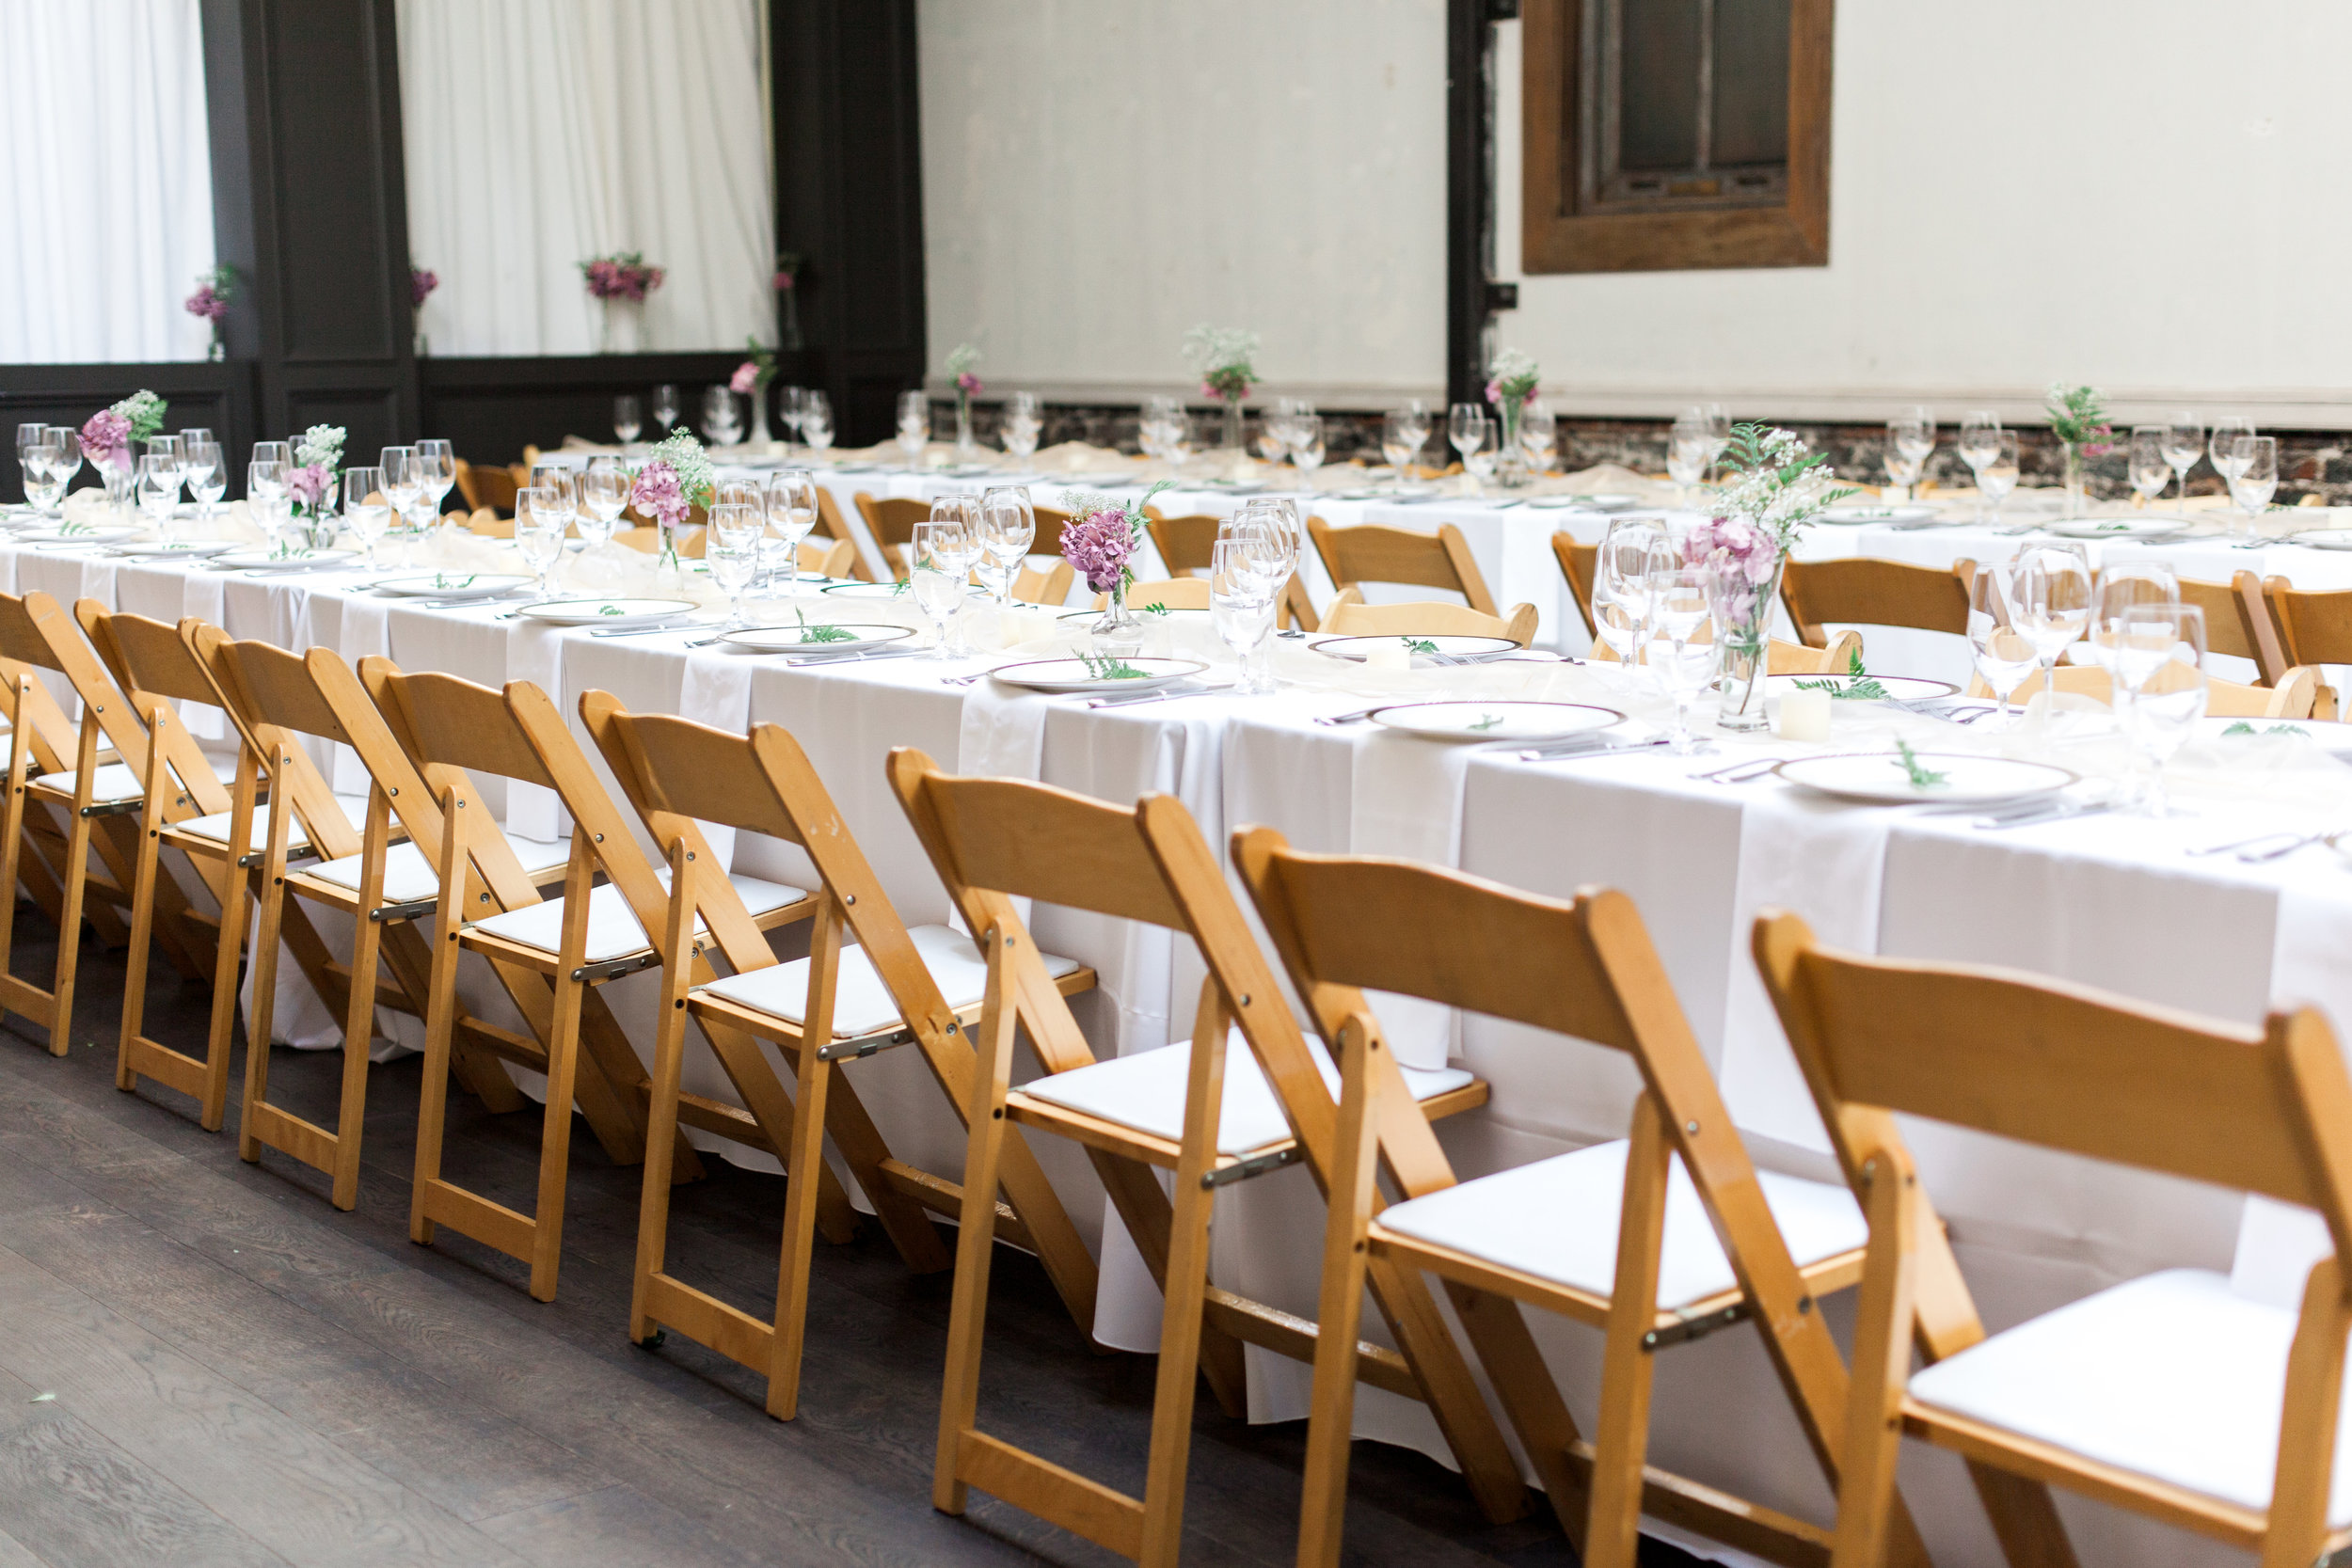 style-inspired-wedding-at-firehouse-8-in-san-francisco-73.jpg